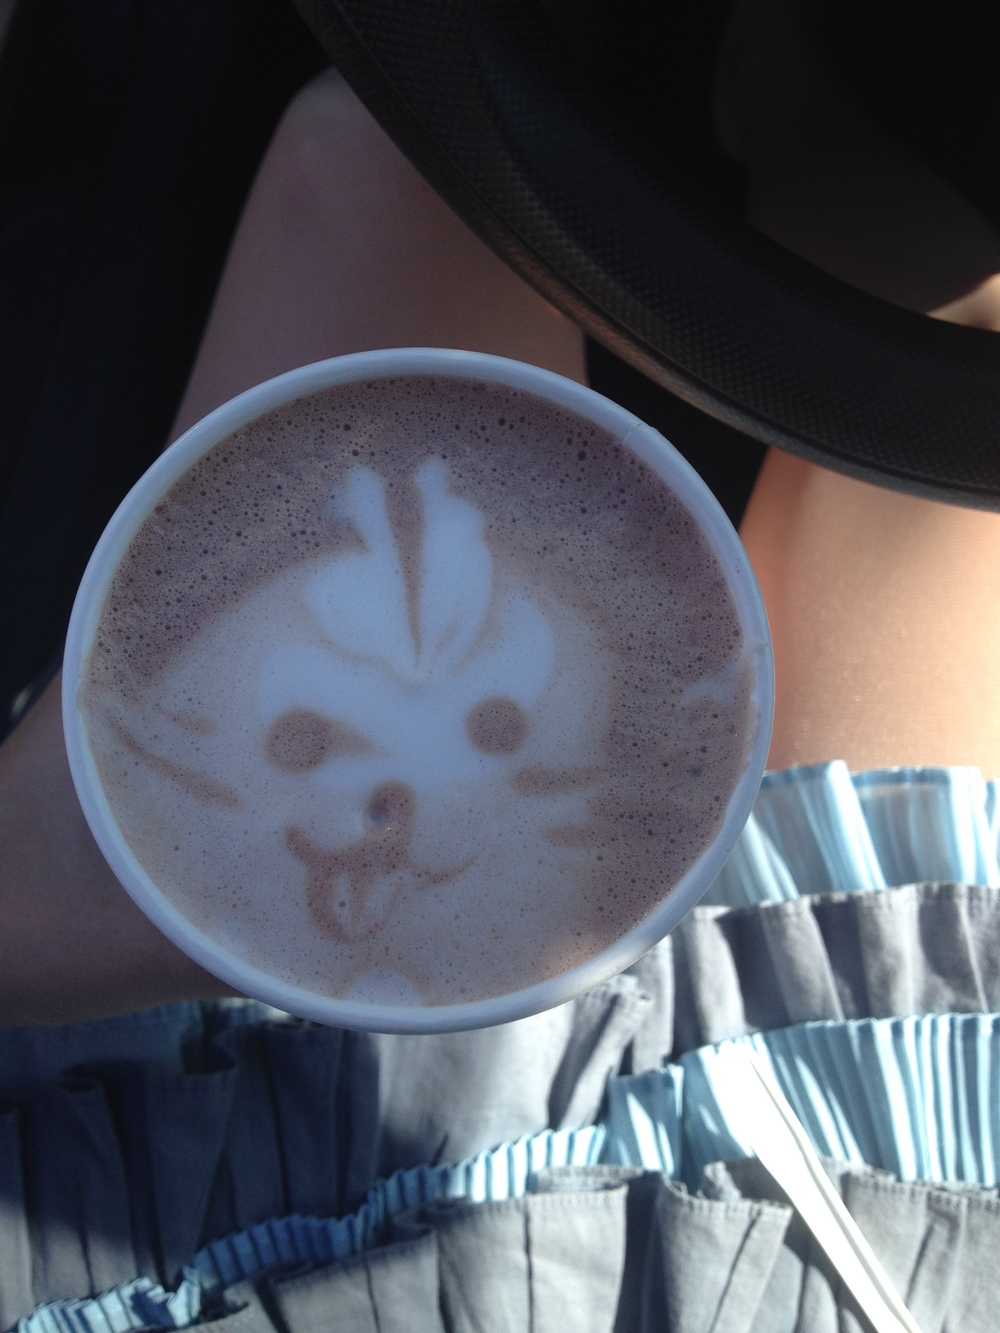 Second cup bunny